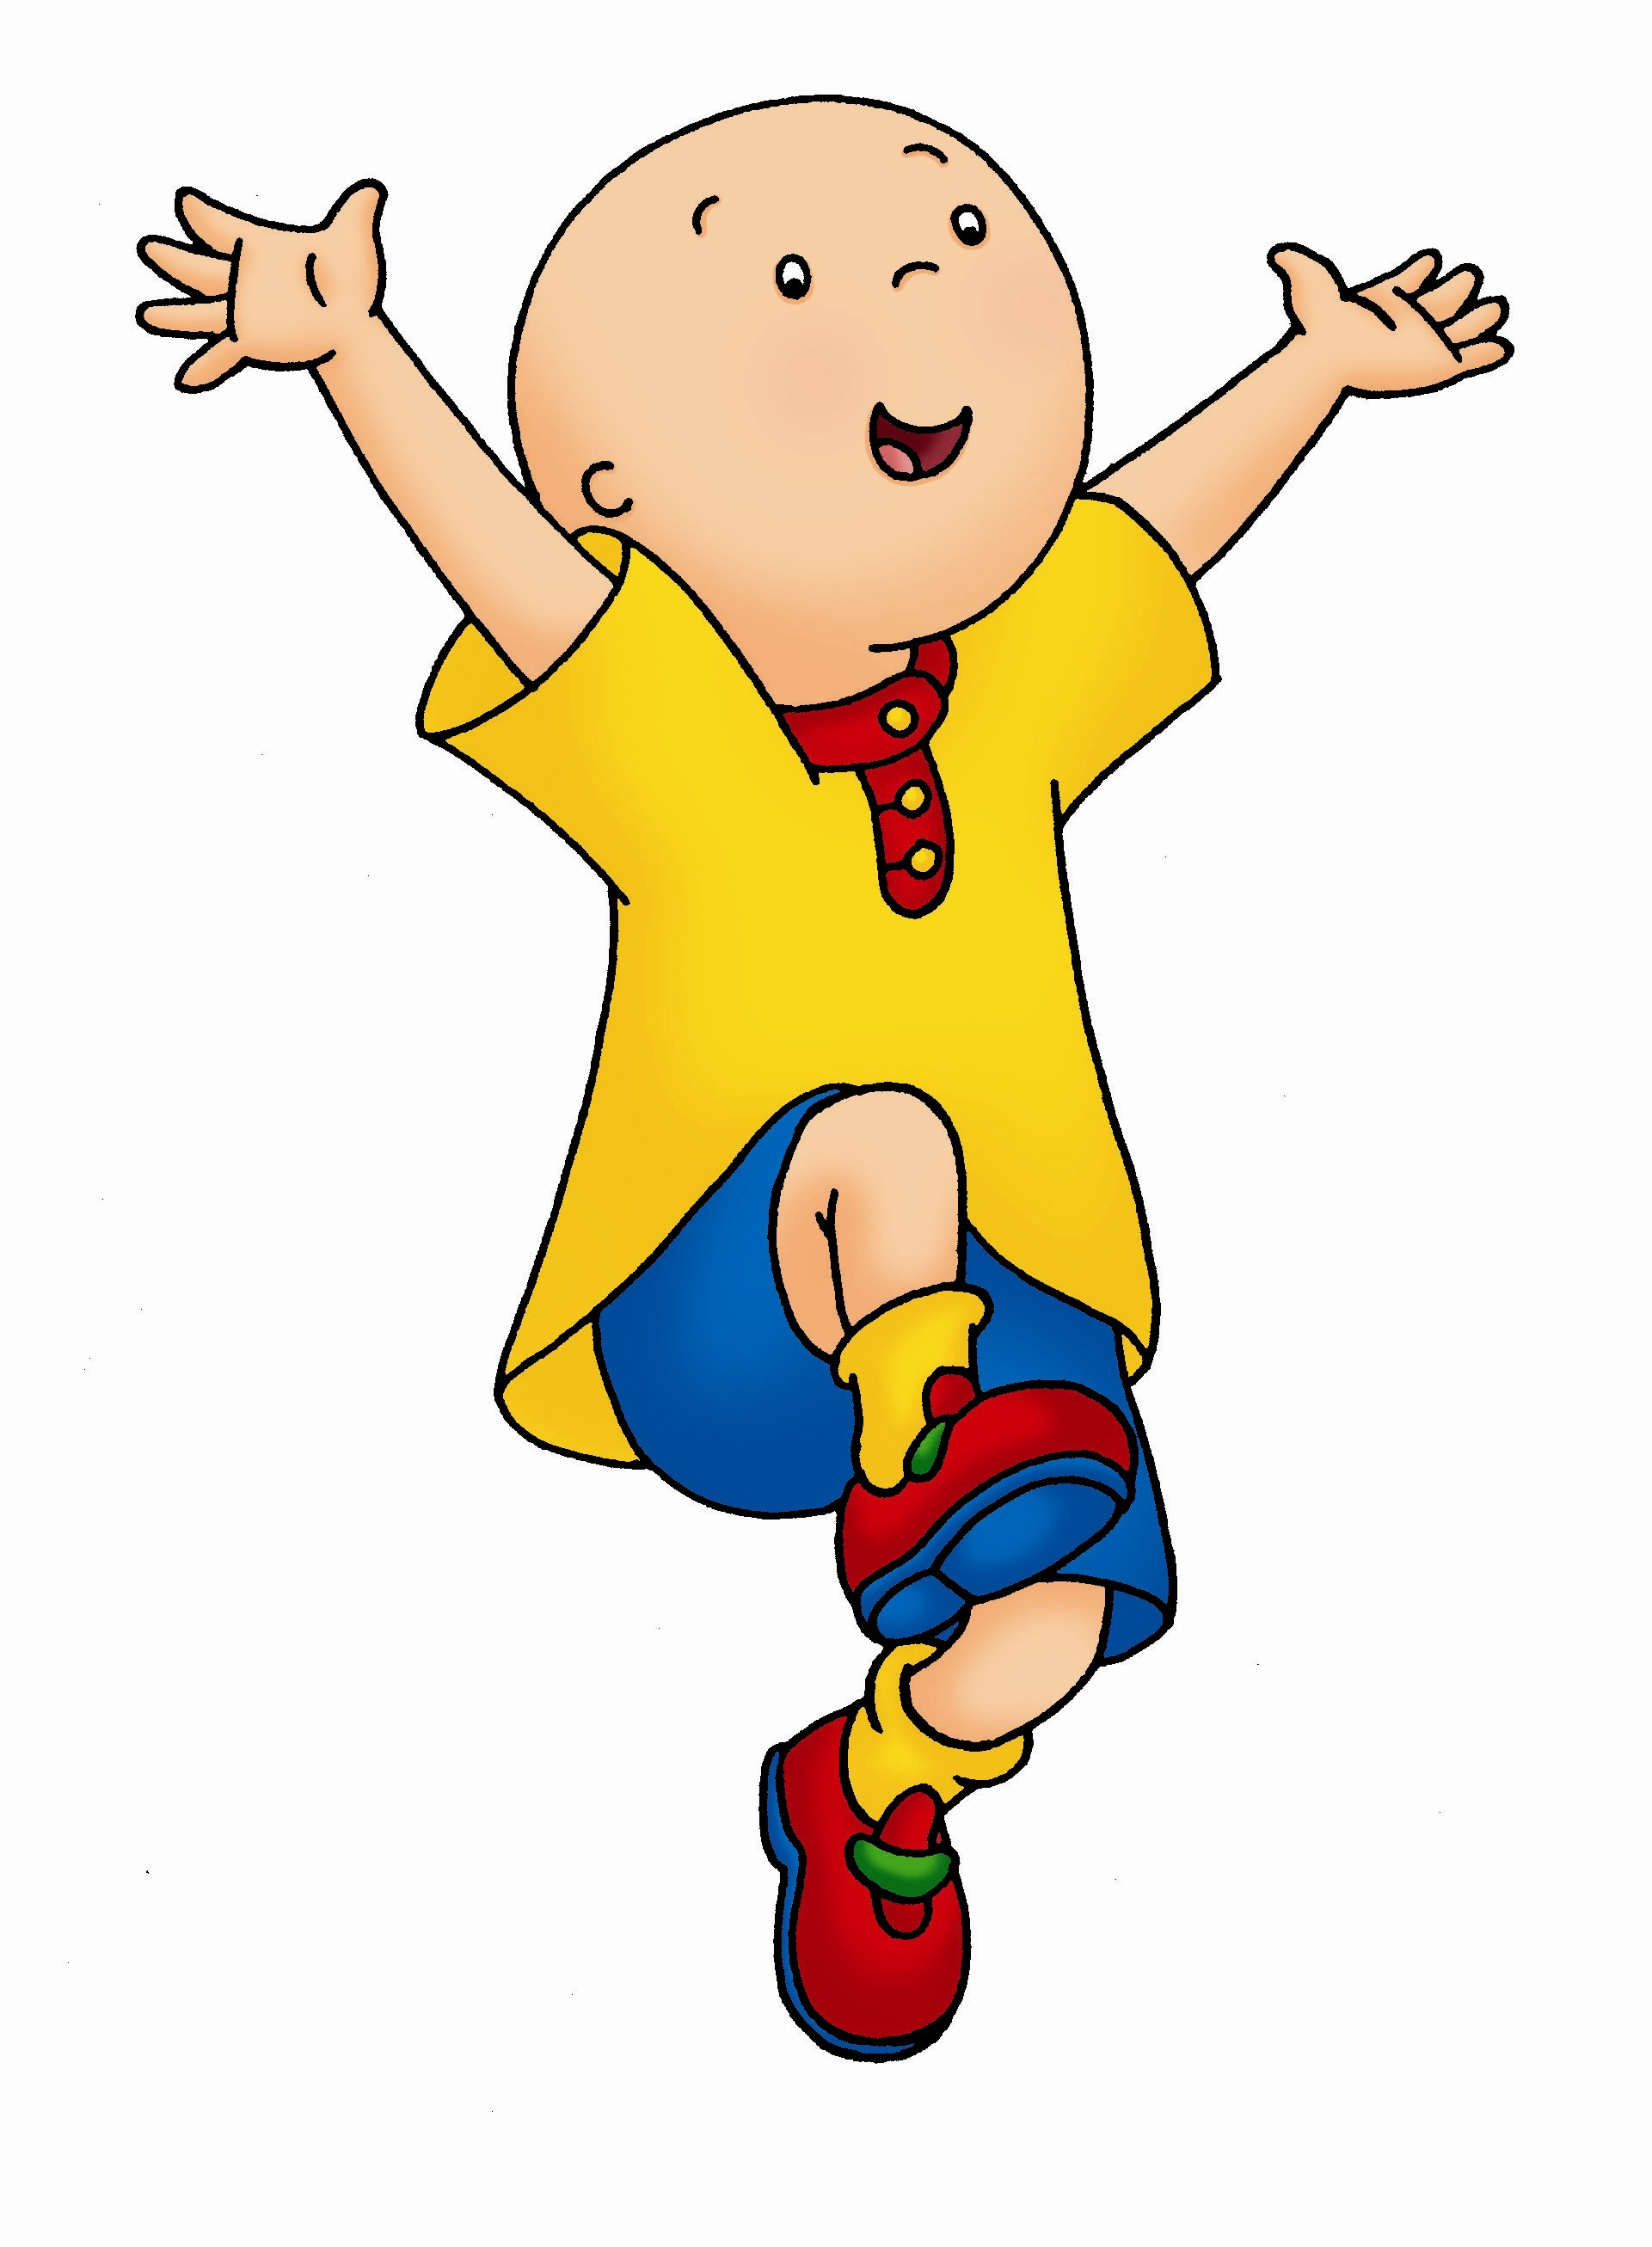 Caillou is just the latest in a long history of annoying.